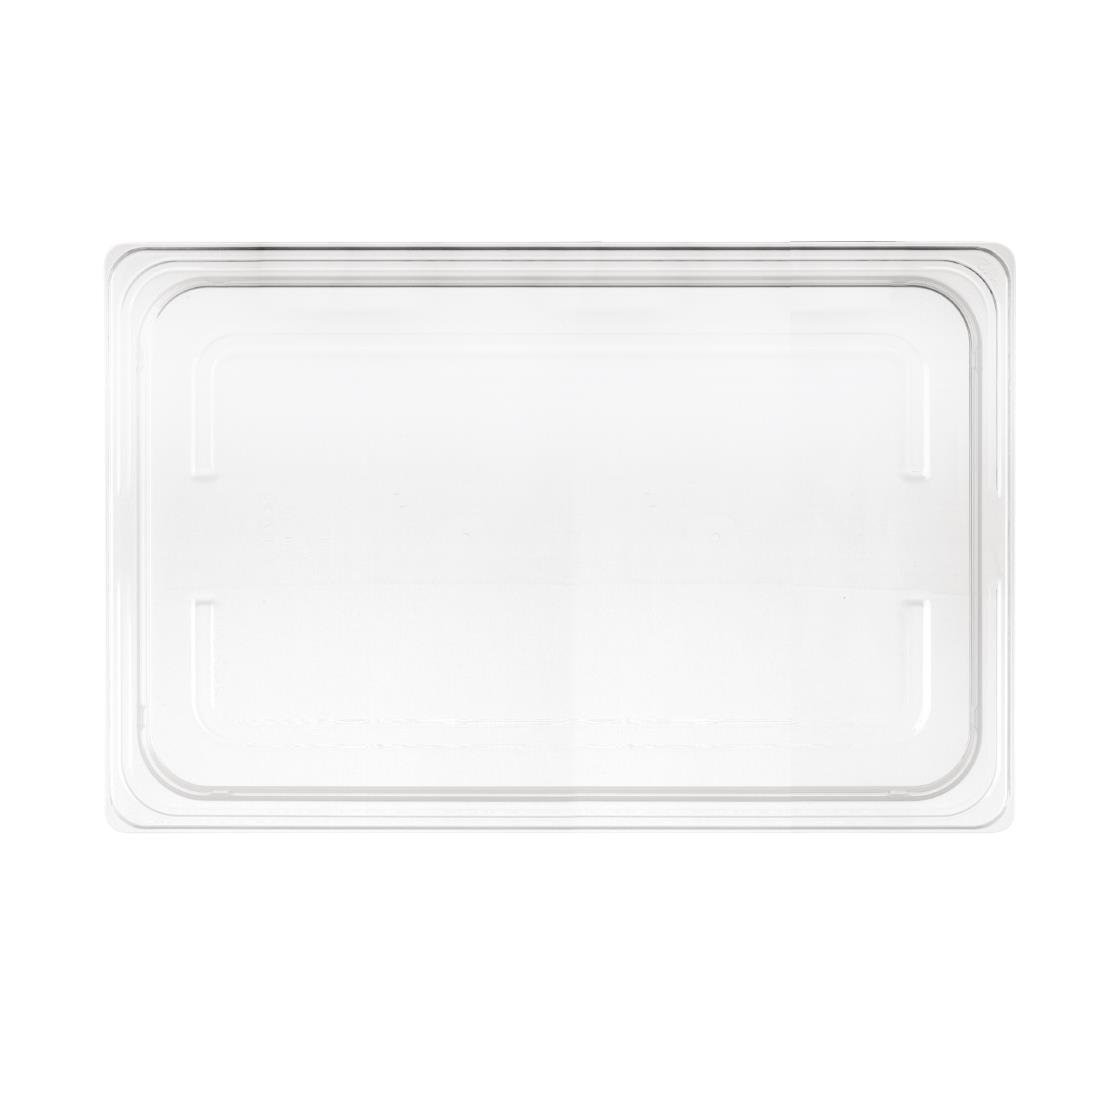 Image of Nisbets Essentials Polypropylene 1/1 Gastronorm Lid Clear